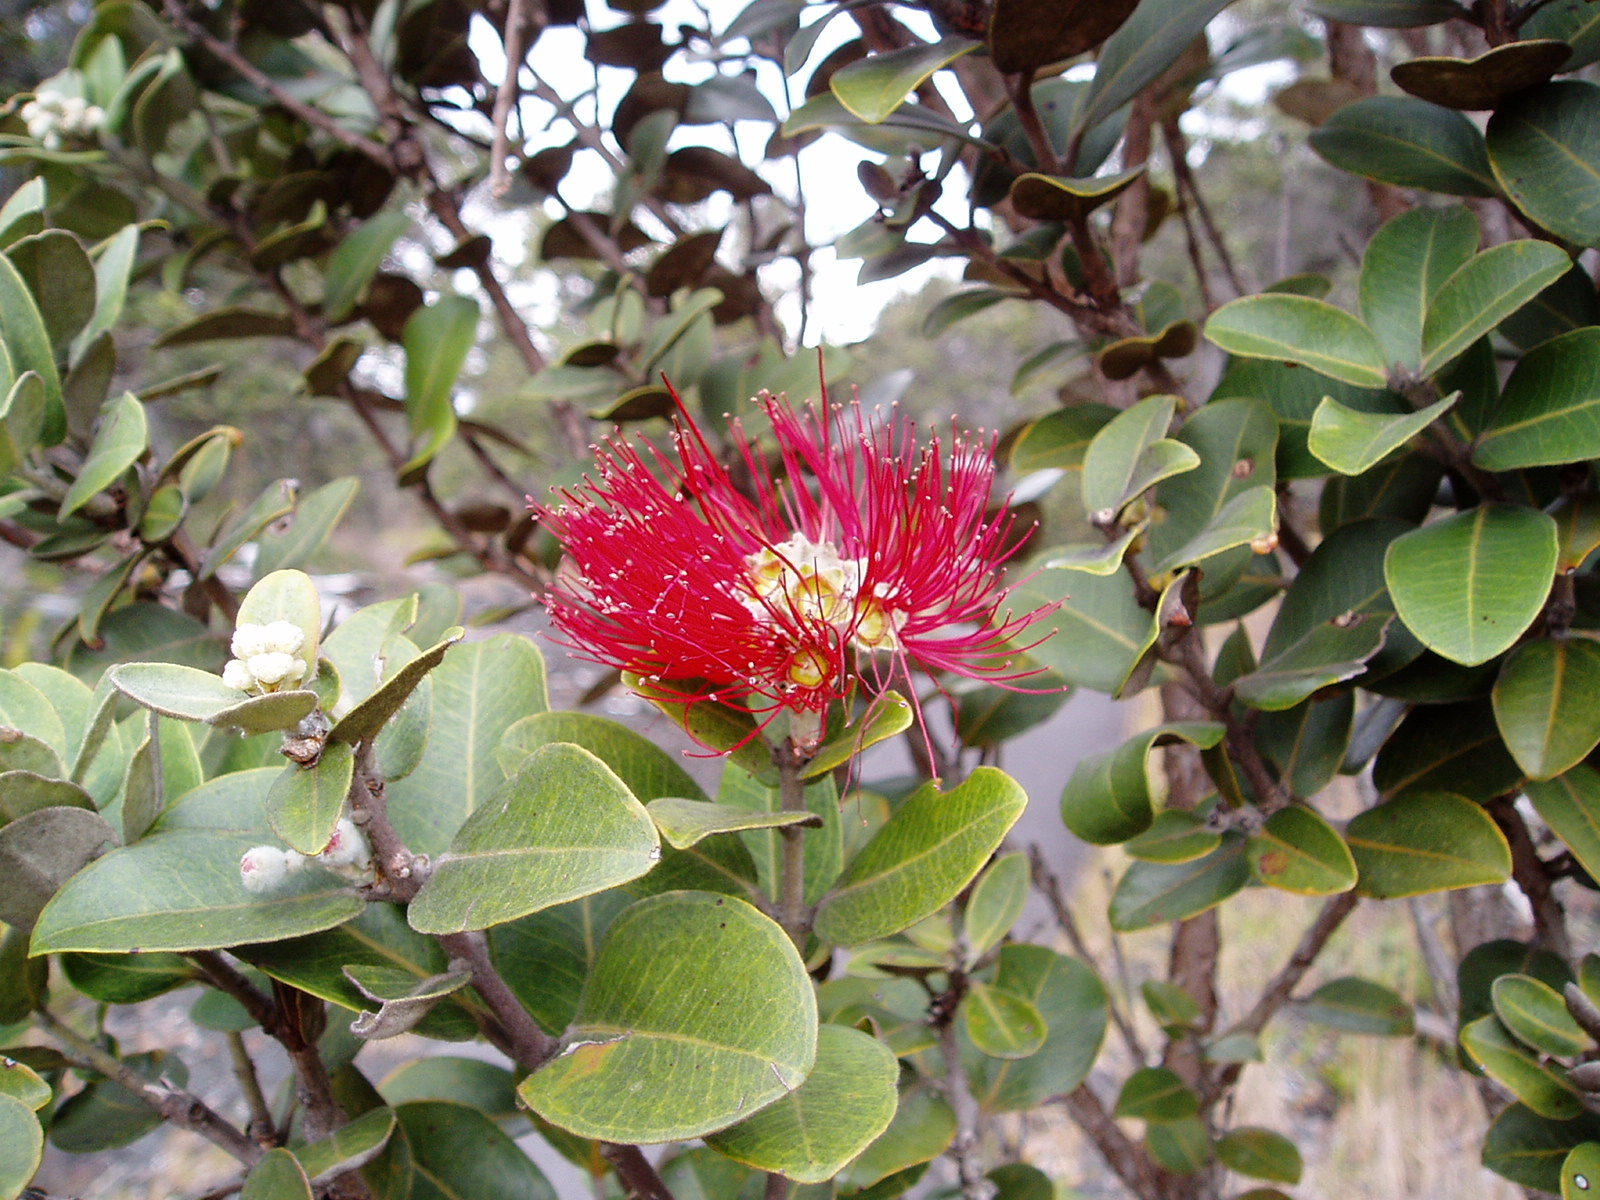 Hawaiian bottle brush